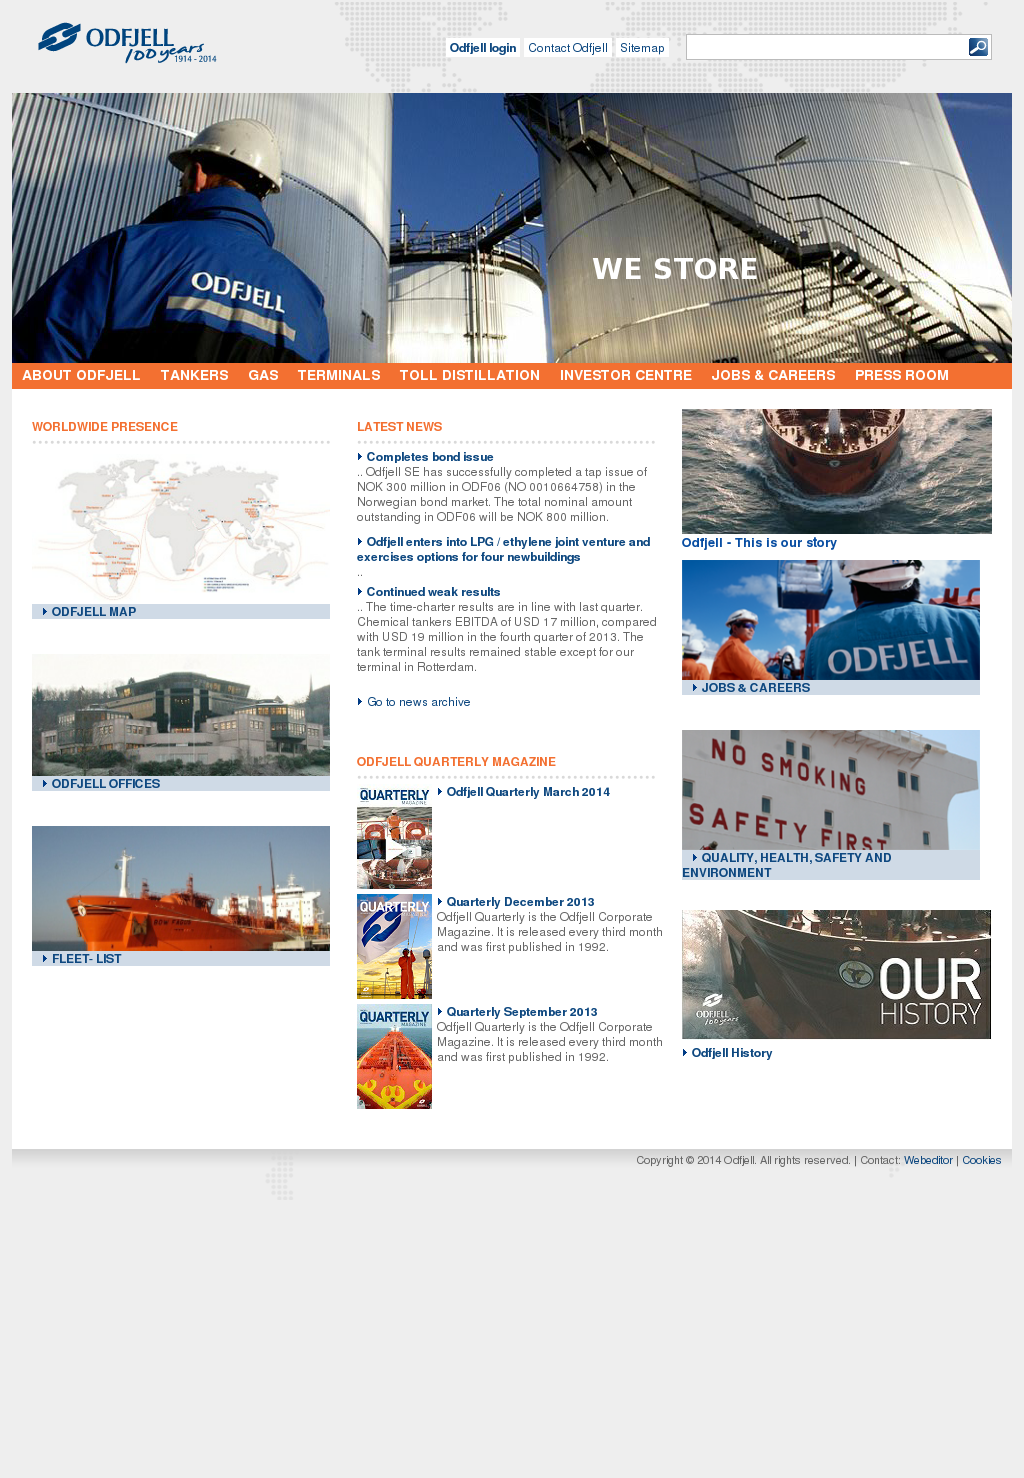 Odfjell Competitors, Revenue and Employees - Owler Company